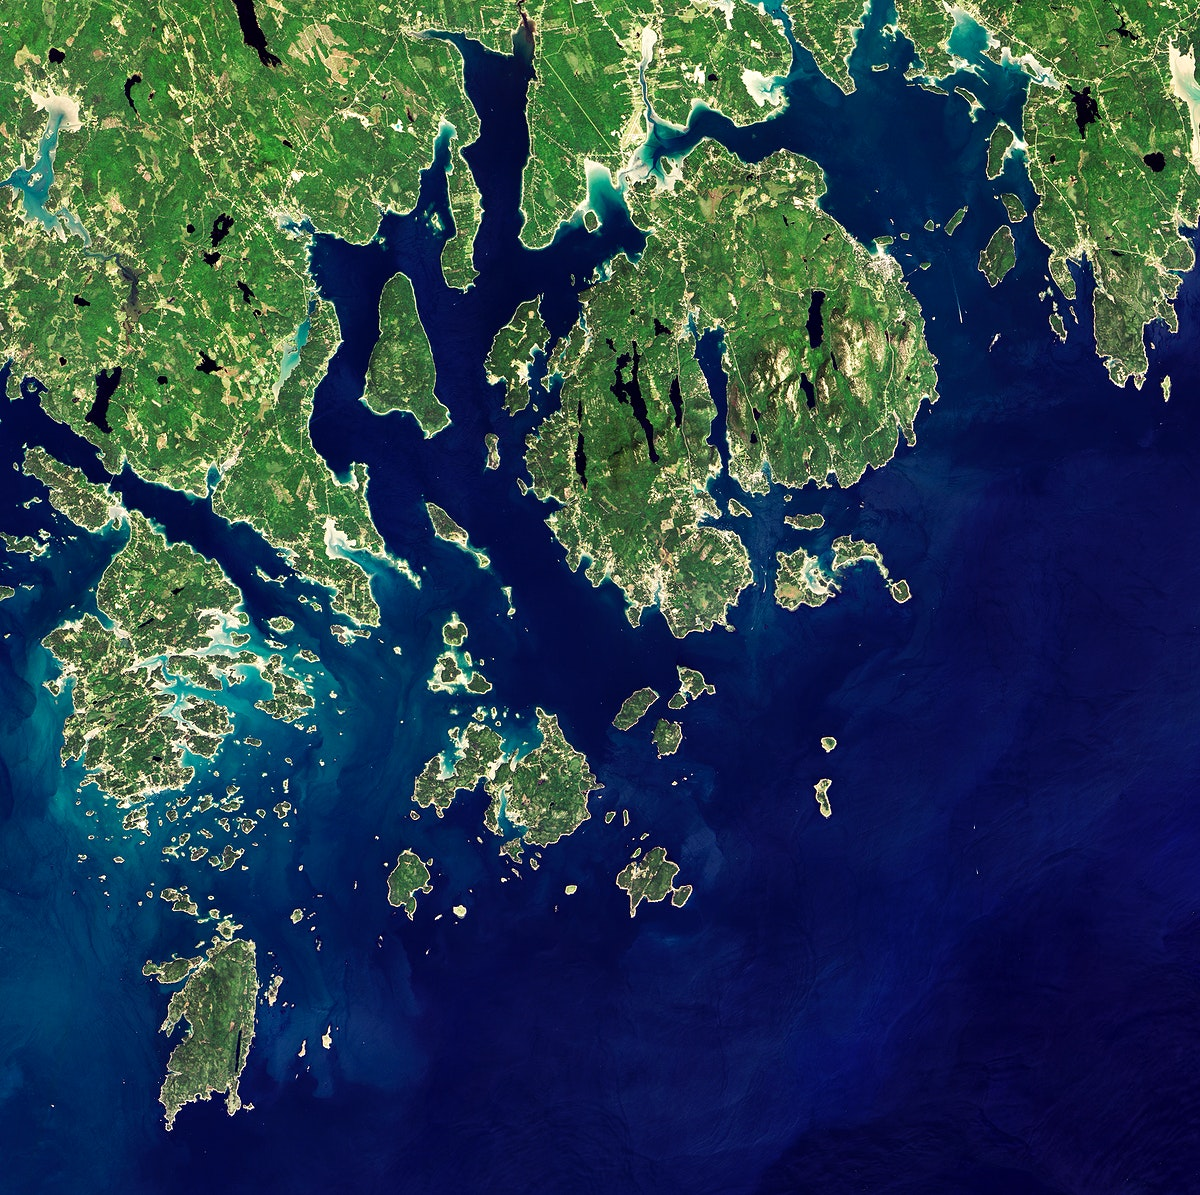 Acadia National Park is one of the most visited parks in America. Original from NASA. Digitally enhanced by rawpixel.